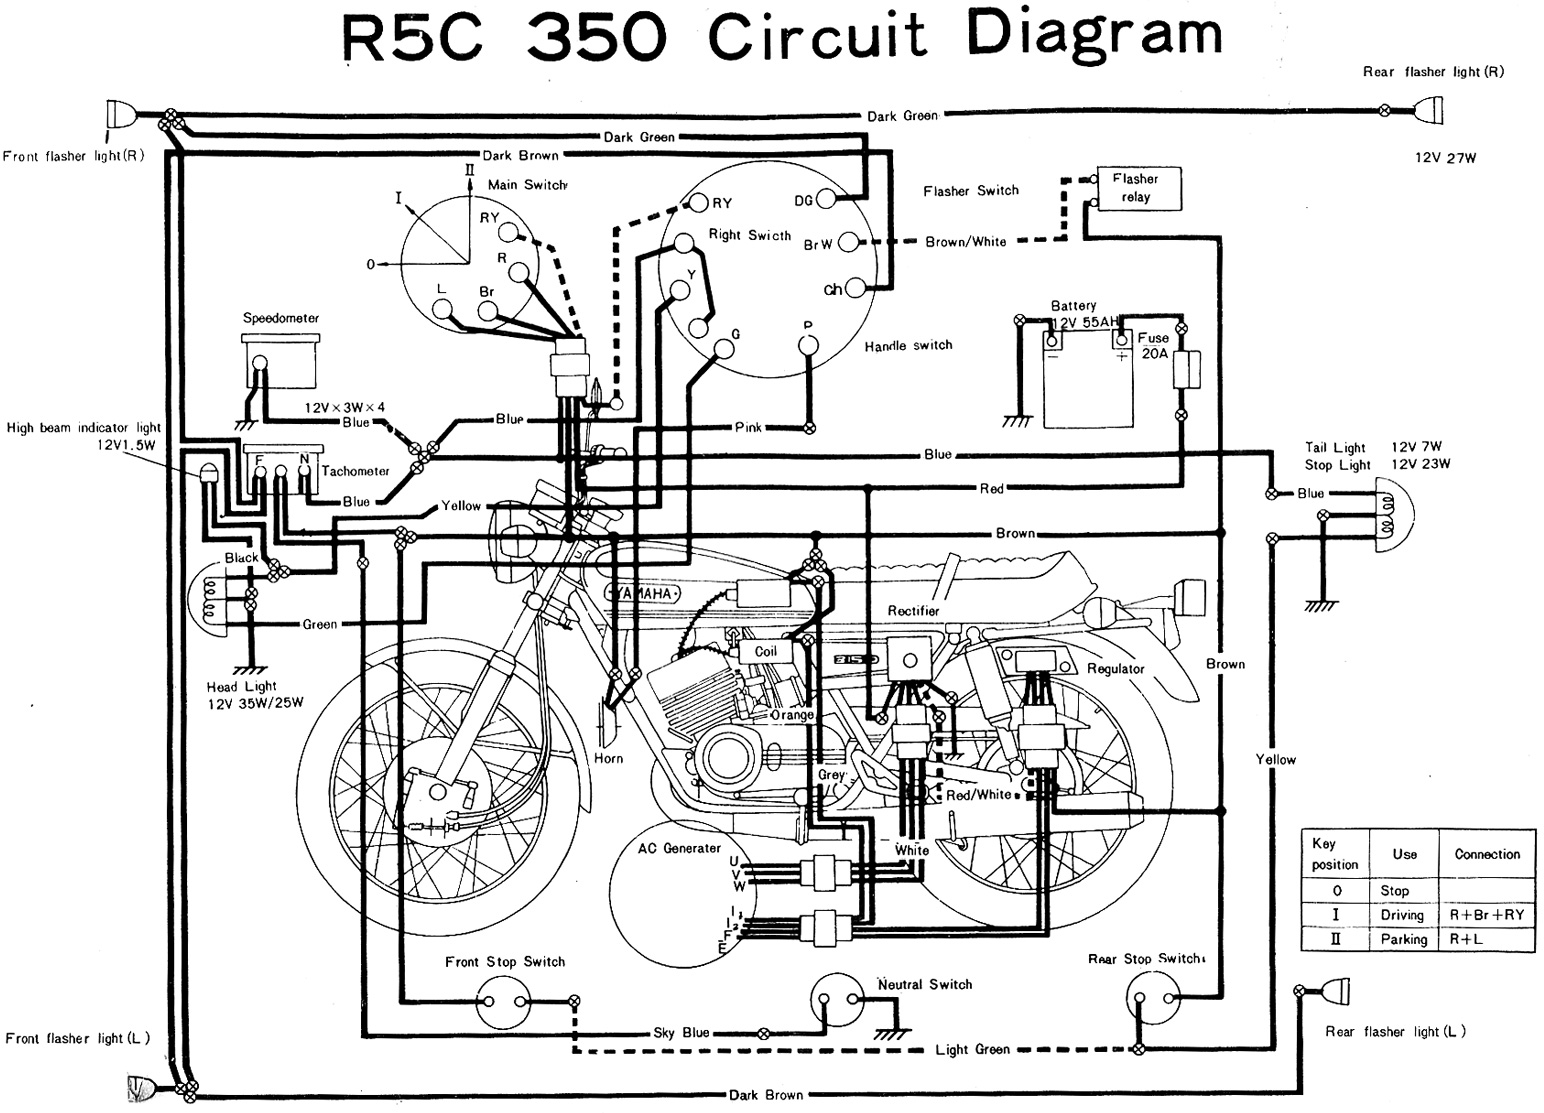 75 Cj5 Wiring Diagram in addition Toyota 20Alternators also W900 Kenworth Fuse Panel Location further John Deere 1050 Wiring Diagram in addition Yamaha Rd350 R5c Wiring Diagram. on volvo alternator wiring